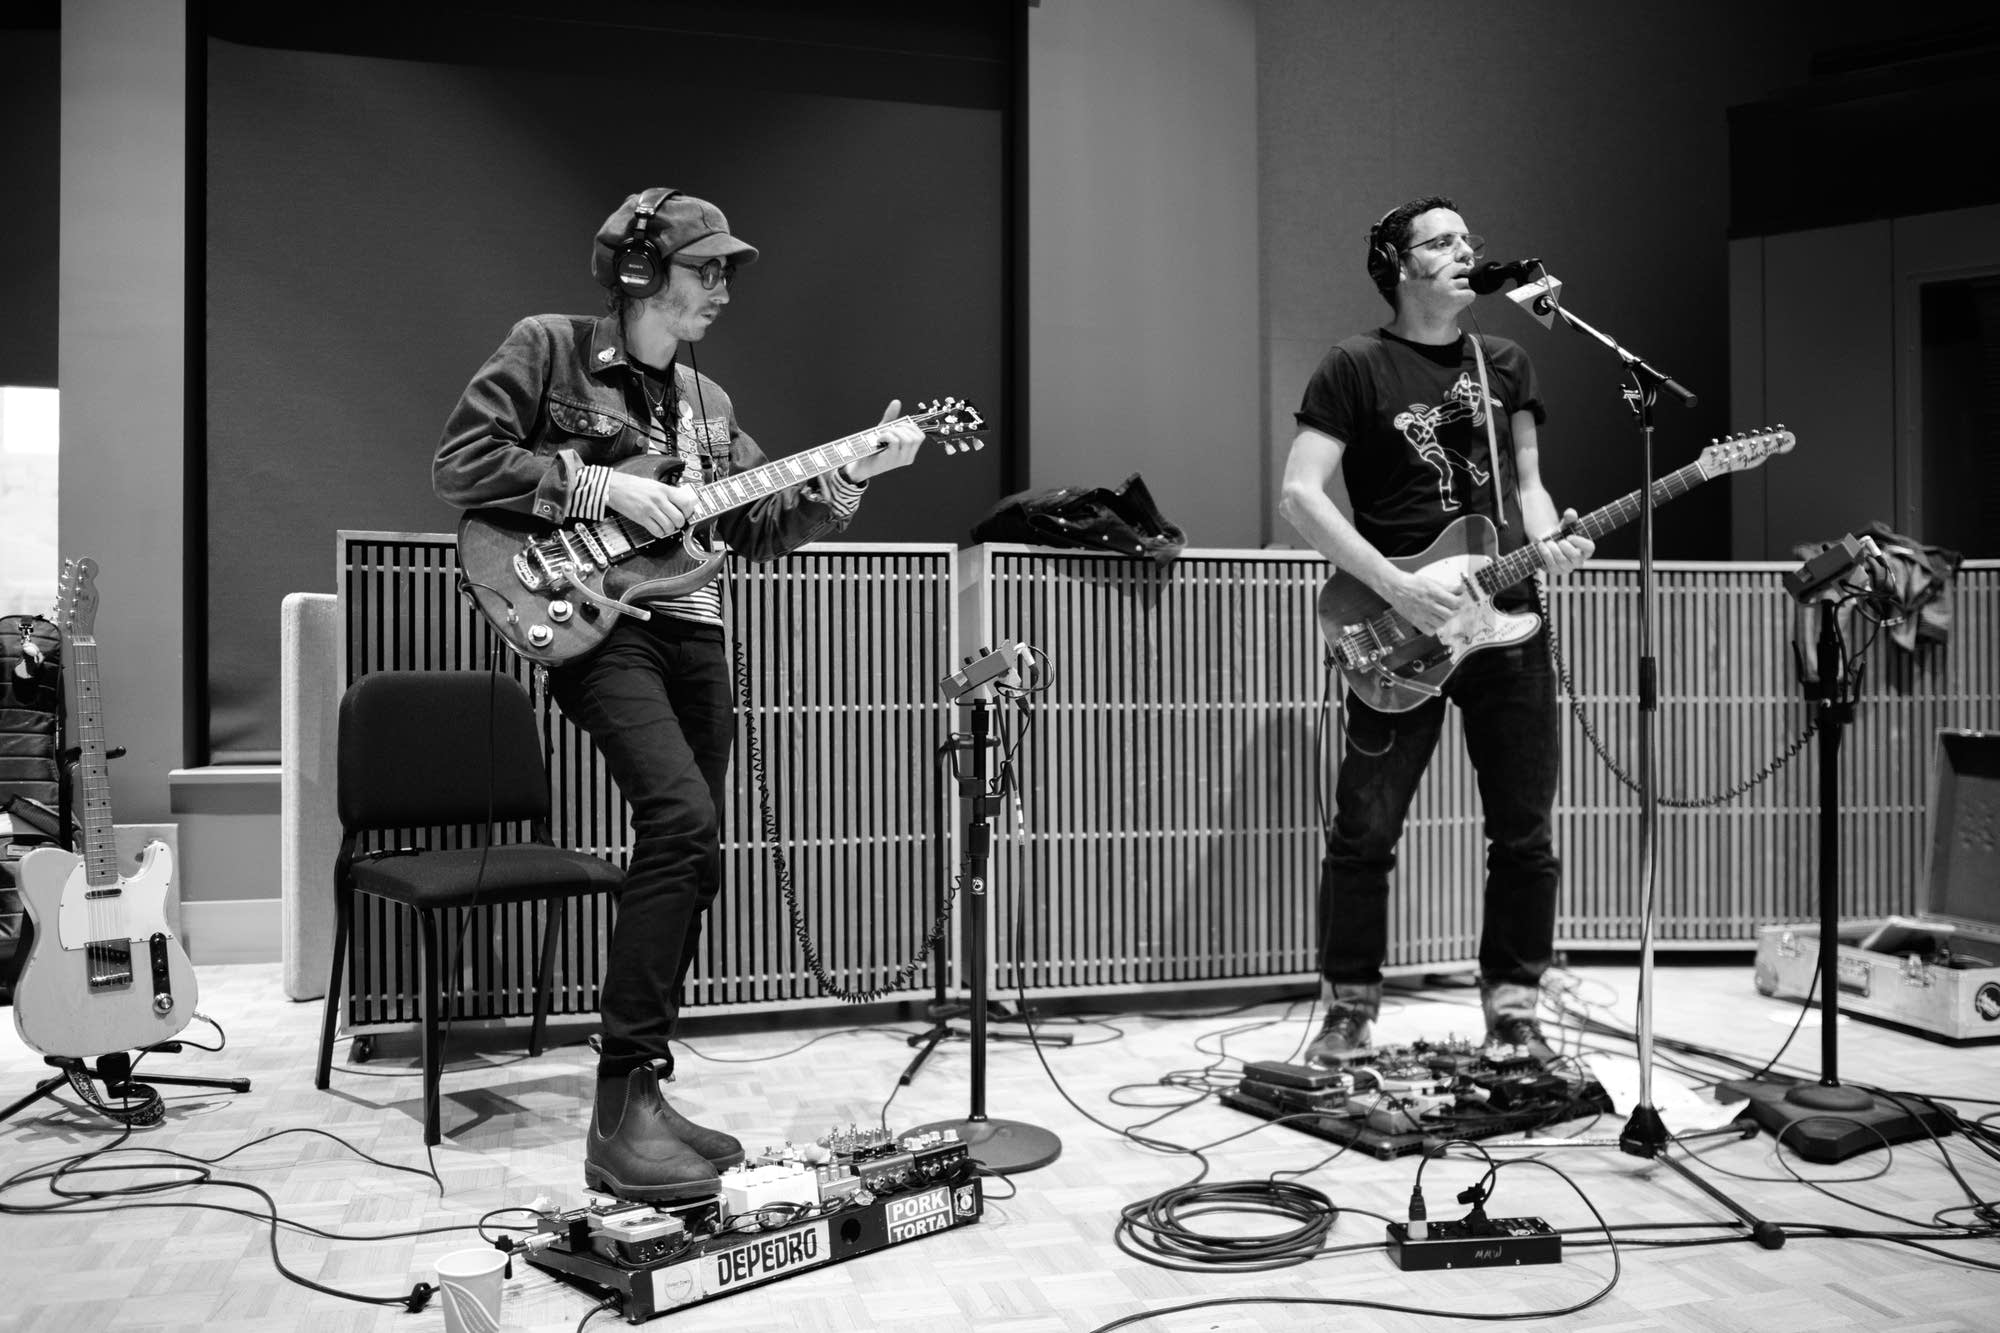 Calexico perform in The Current studio